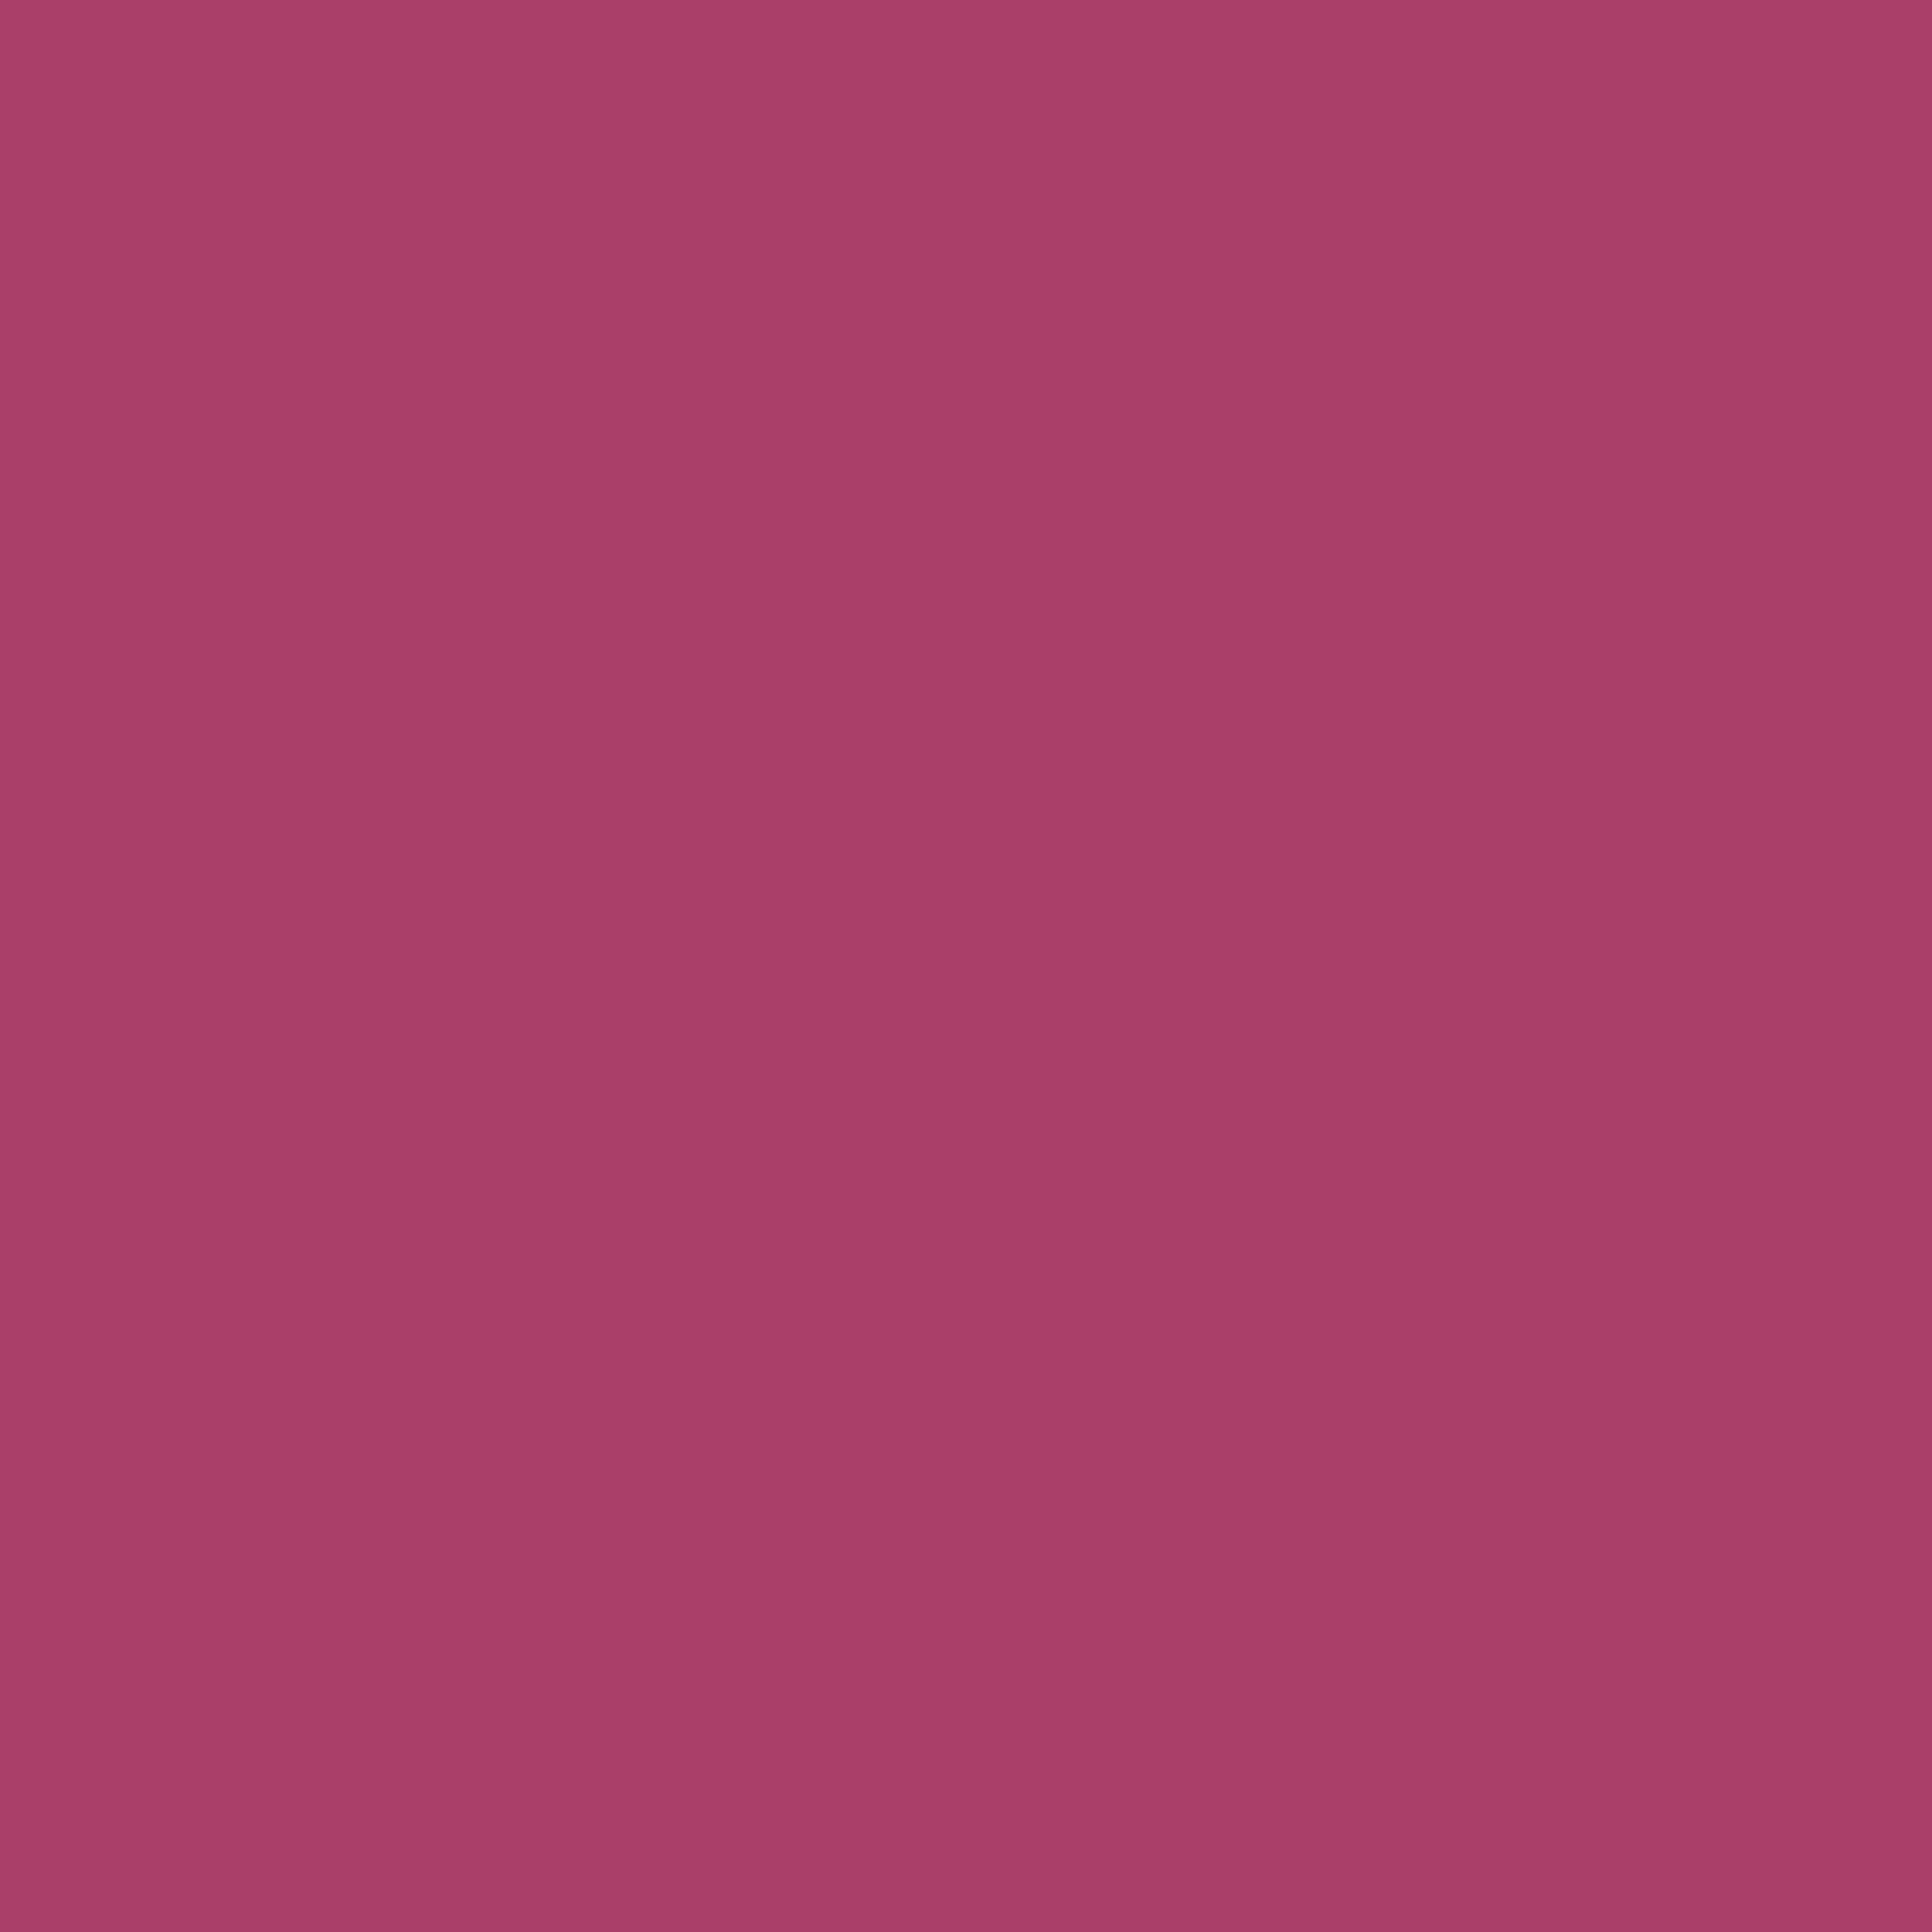 2732x2732 Medium Ruby Solid Color Background